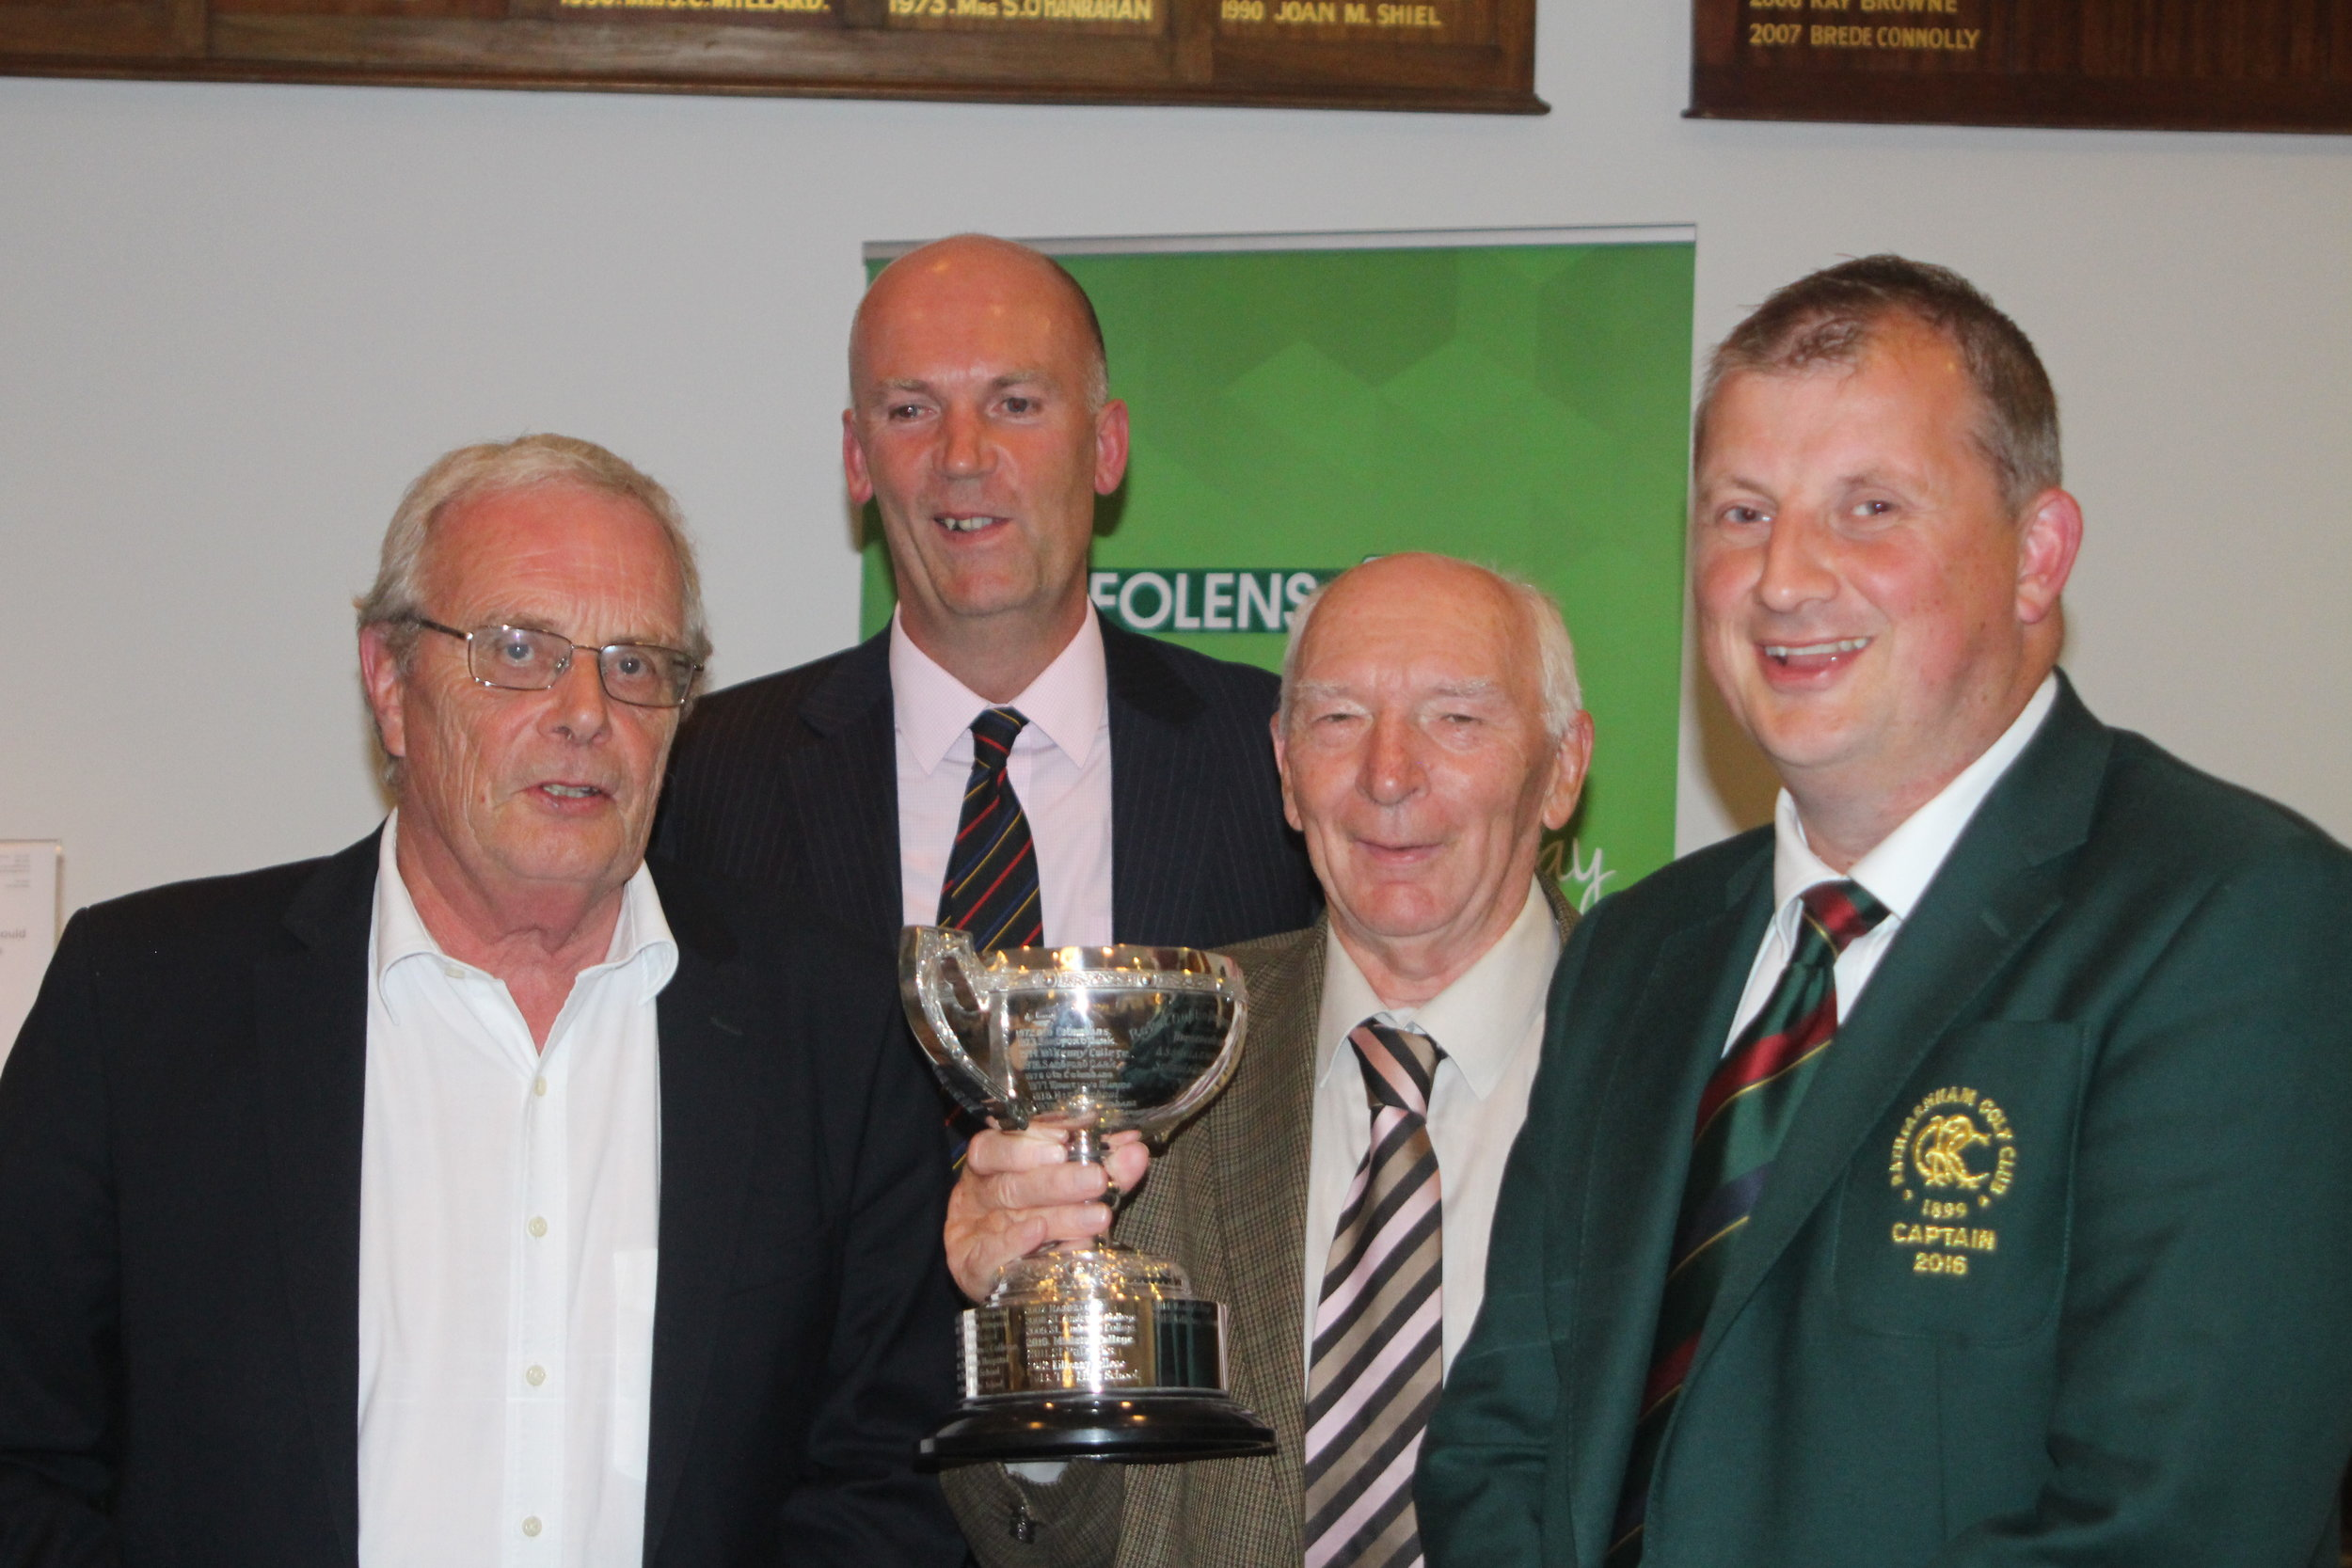 Members of the ASU Golf Winning team with John Gillis President  Malcolm Taylor, Alvin Maidment and Alan Hood Capt of Rathfarnham Golf Club